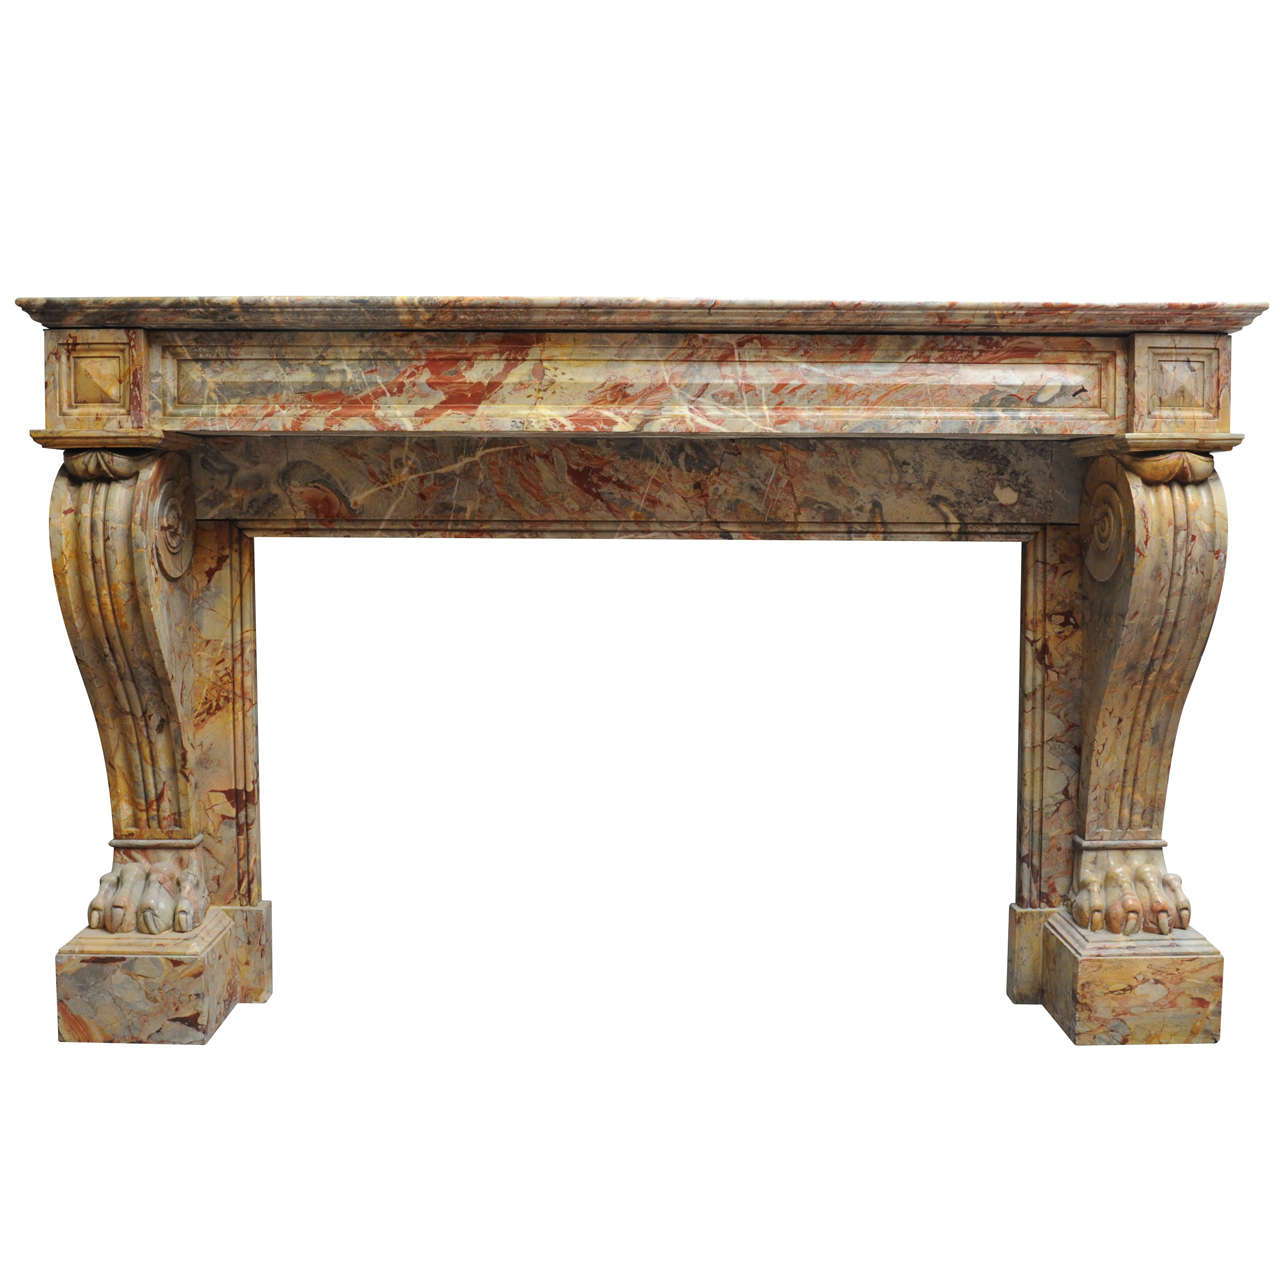 A 19th c french empire sarrancolin marble fireplace mantel piece circa 1820 at 1stdibs - Fireplace mantel piece ...